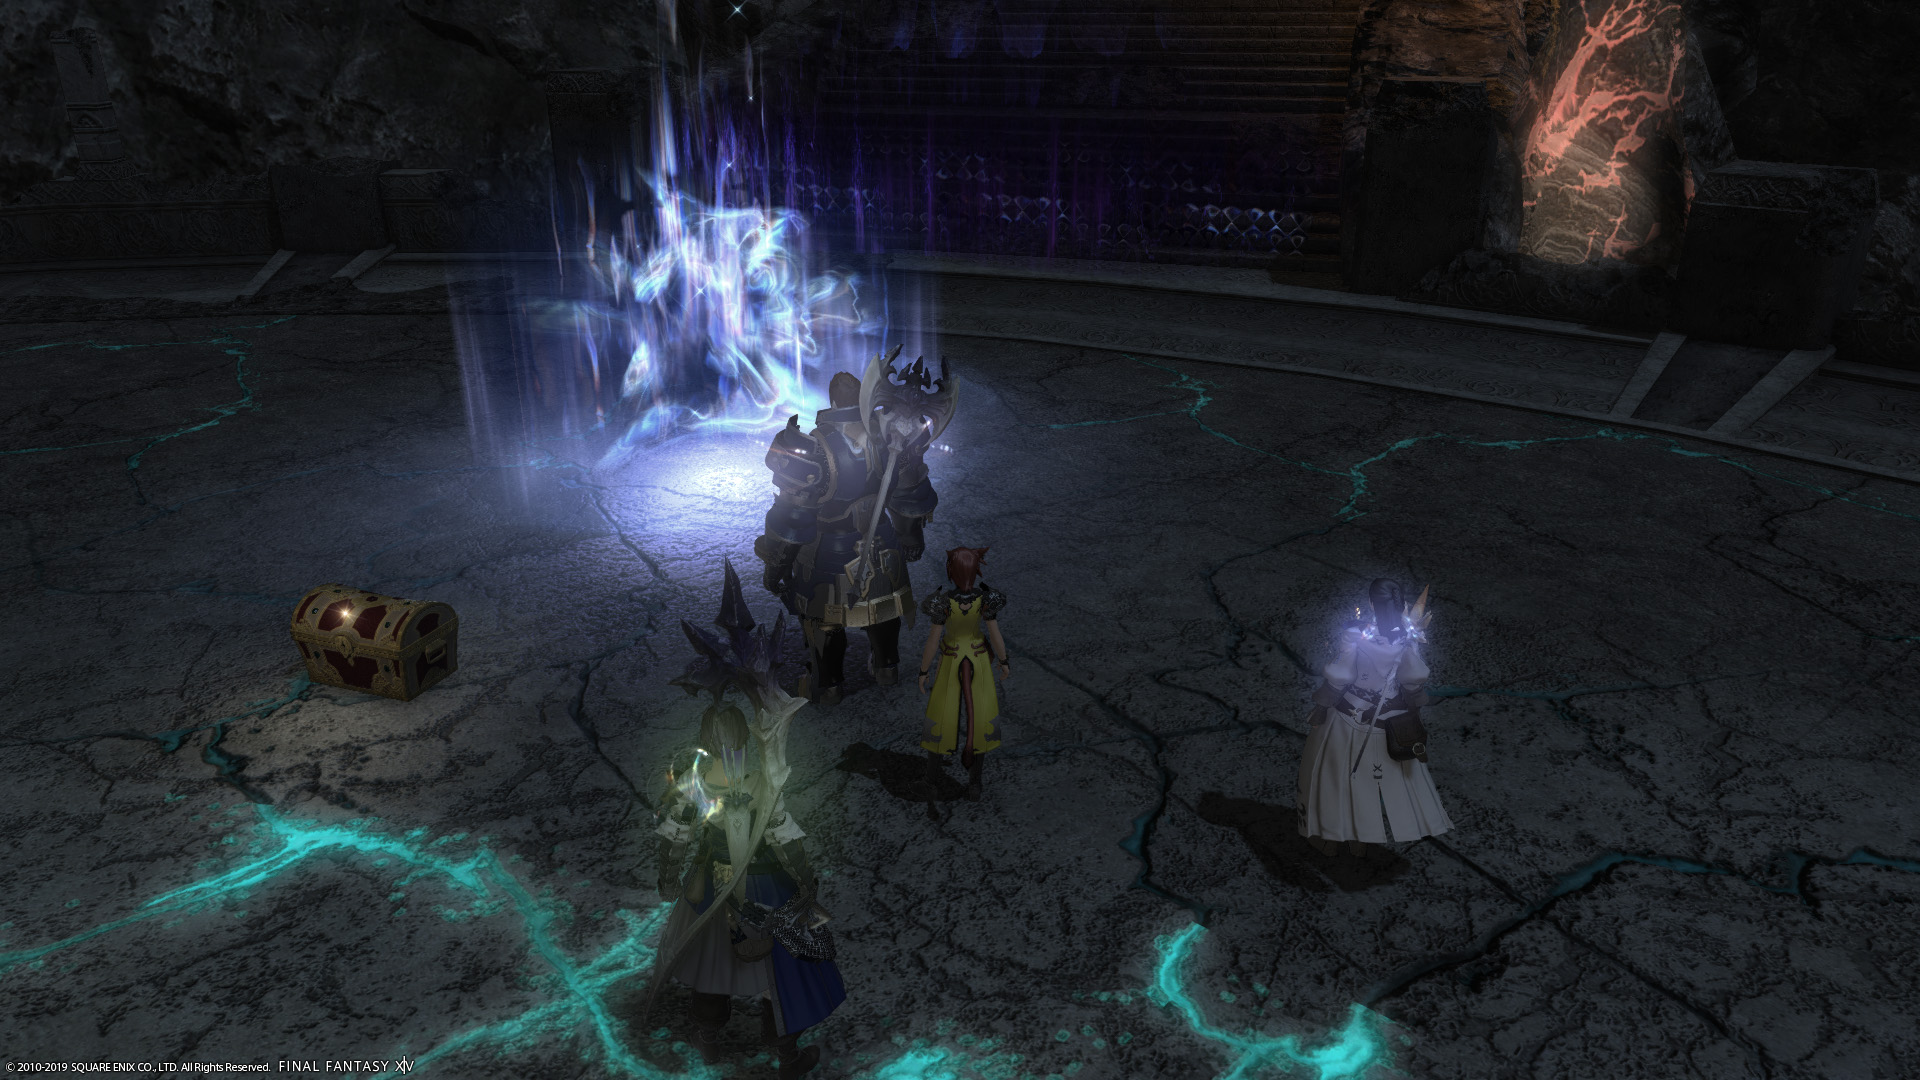 Ffxiv pvp bots | Curious about ffxiv bannings  2019-02-25